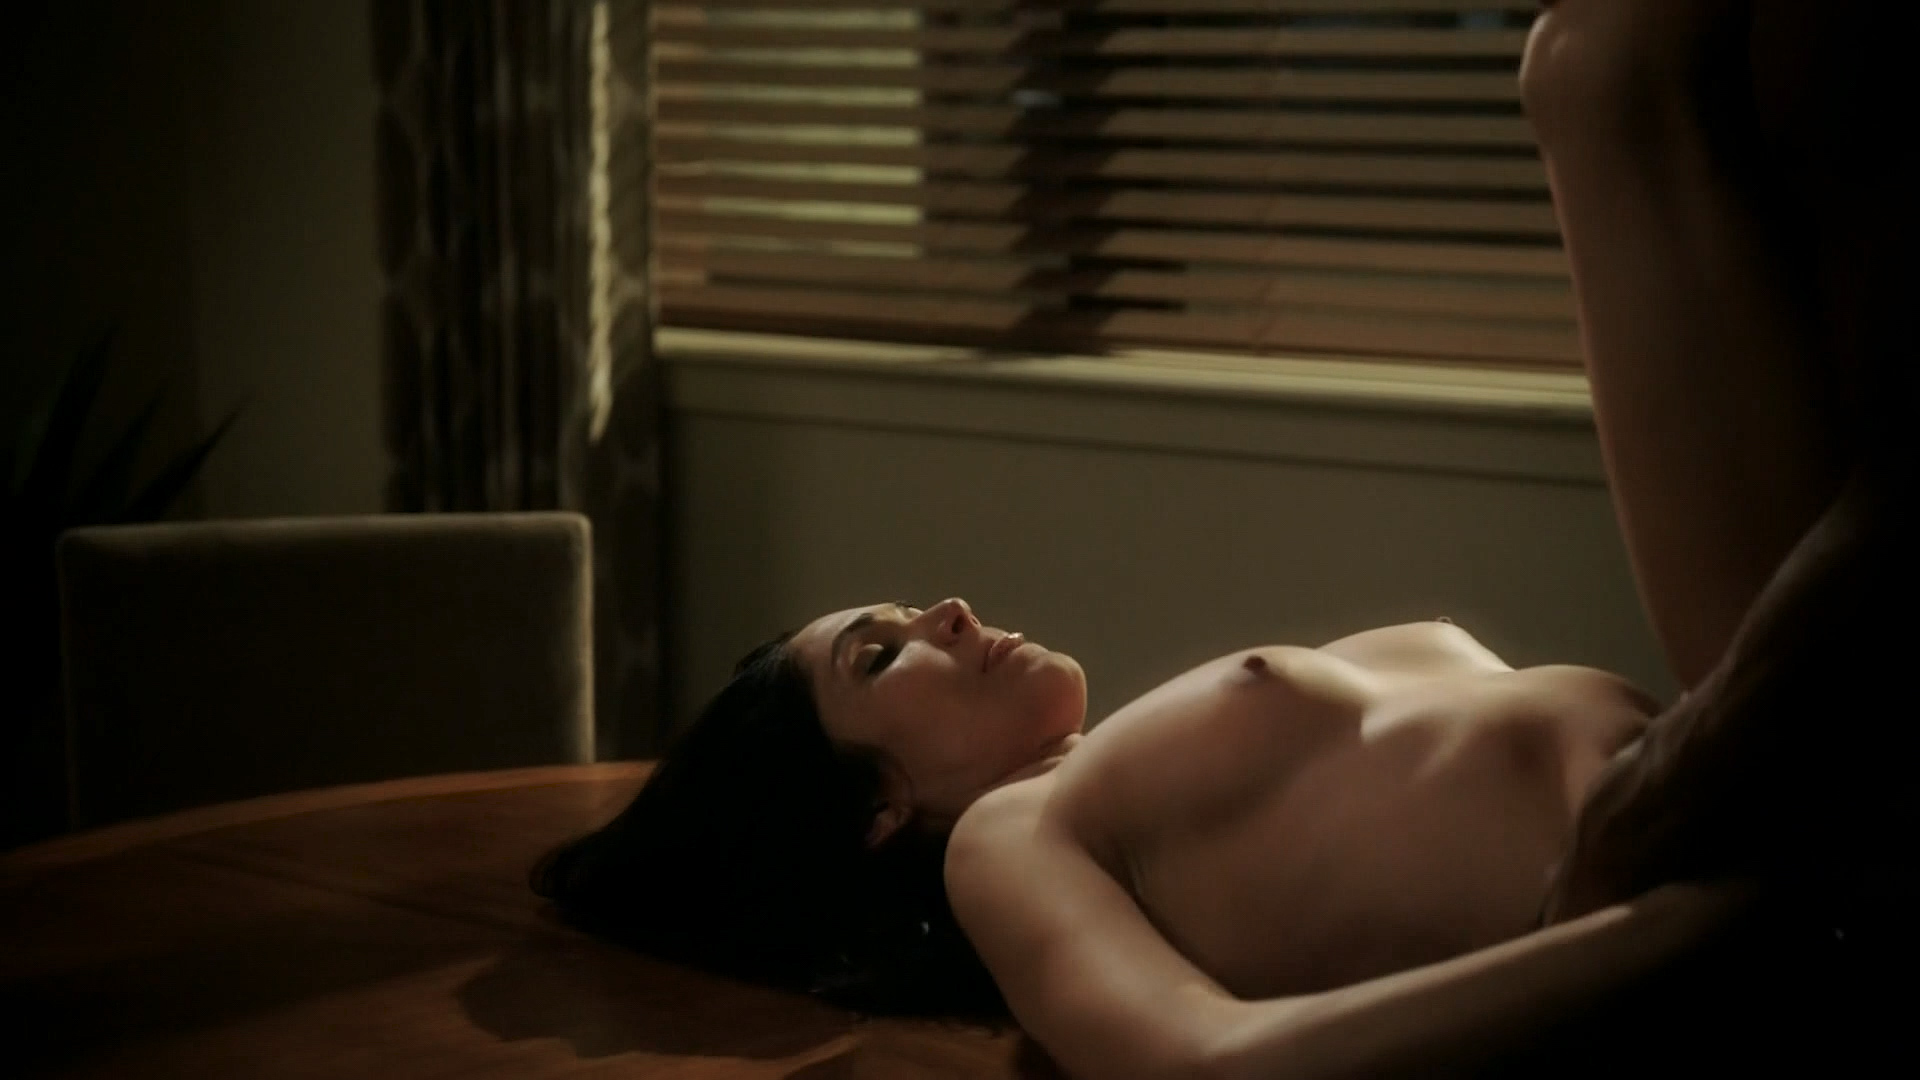 Lela loren sex scenes in power seasons 1 2